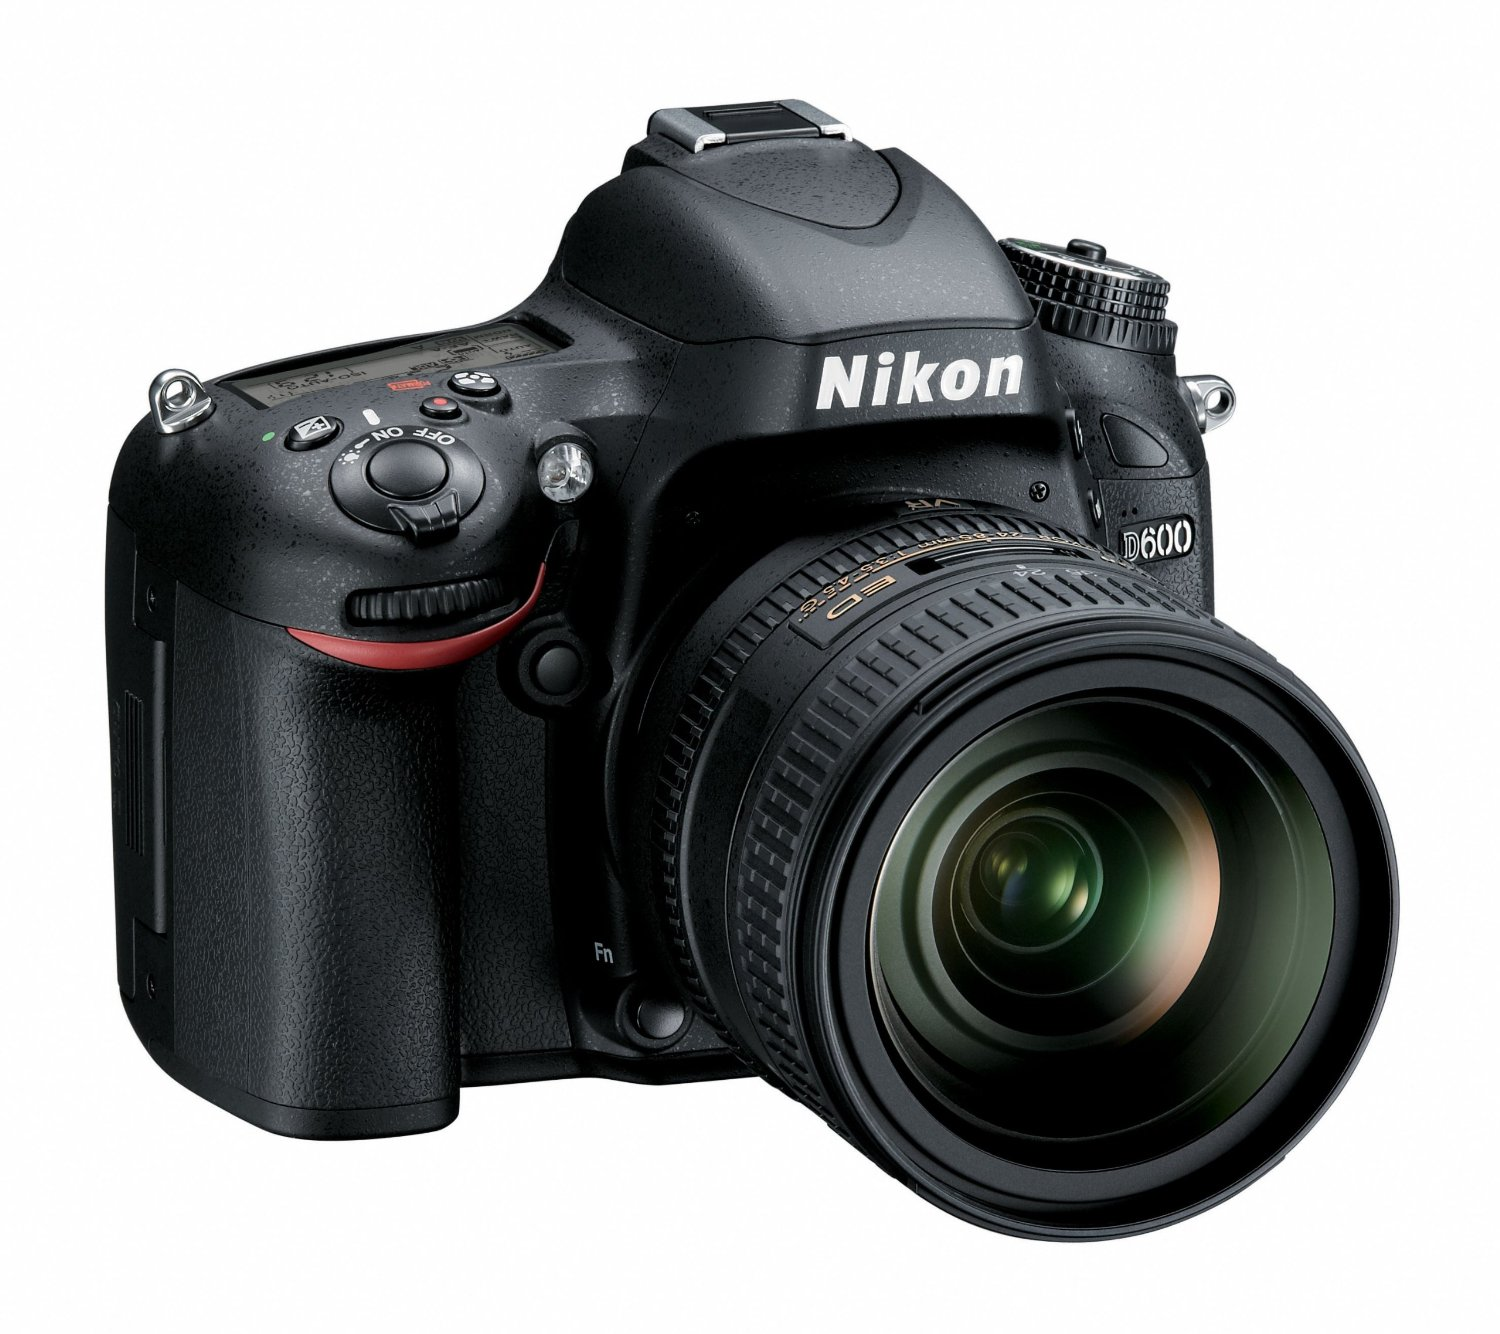 Nikon D600 24.3 MP Digital SLR Camera 24-85mm